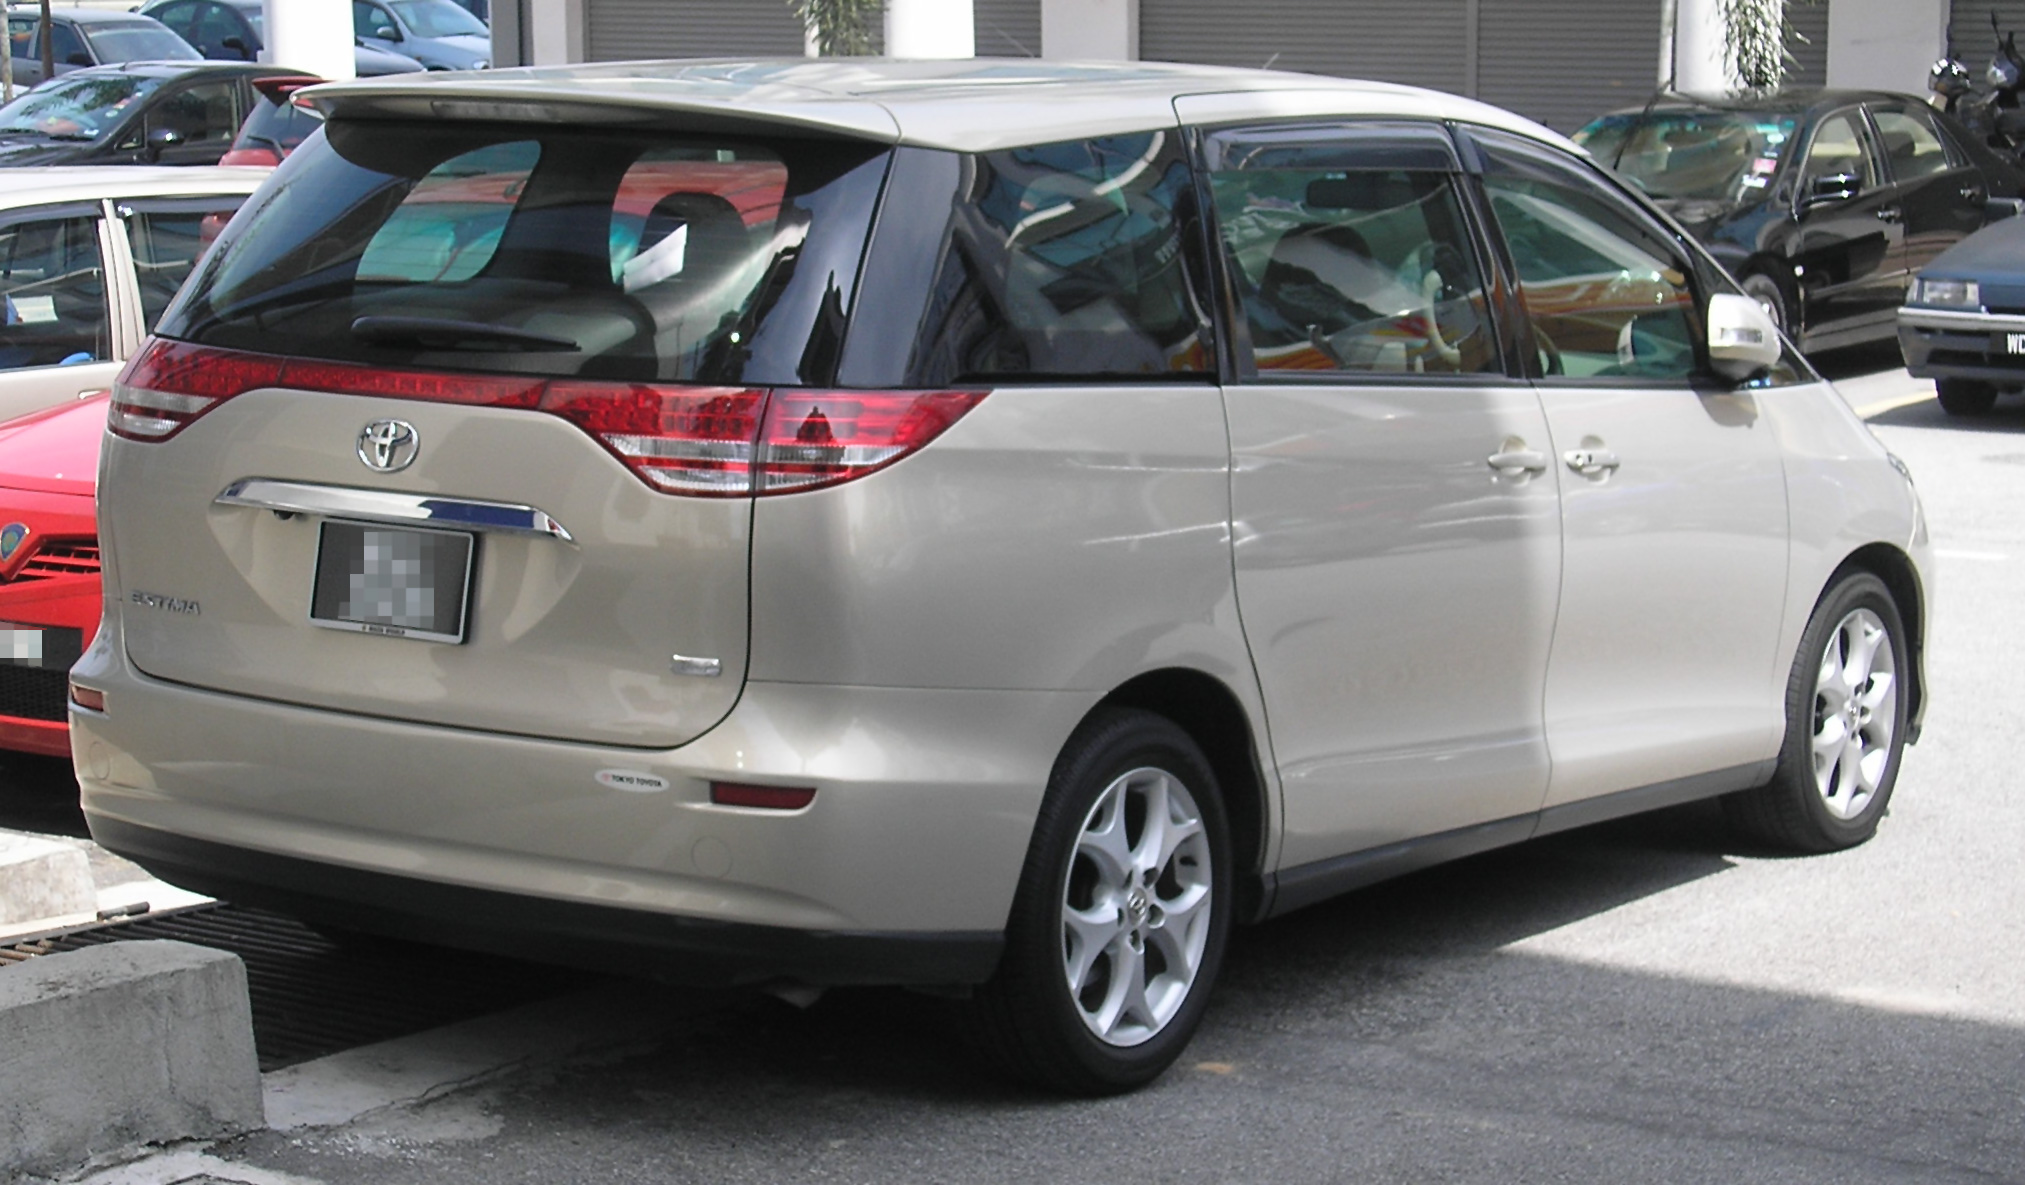 Toyota Estima  Exterior Rear End